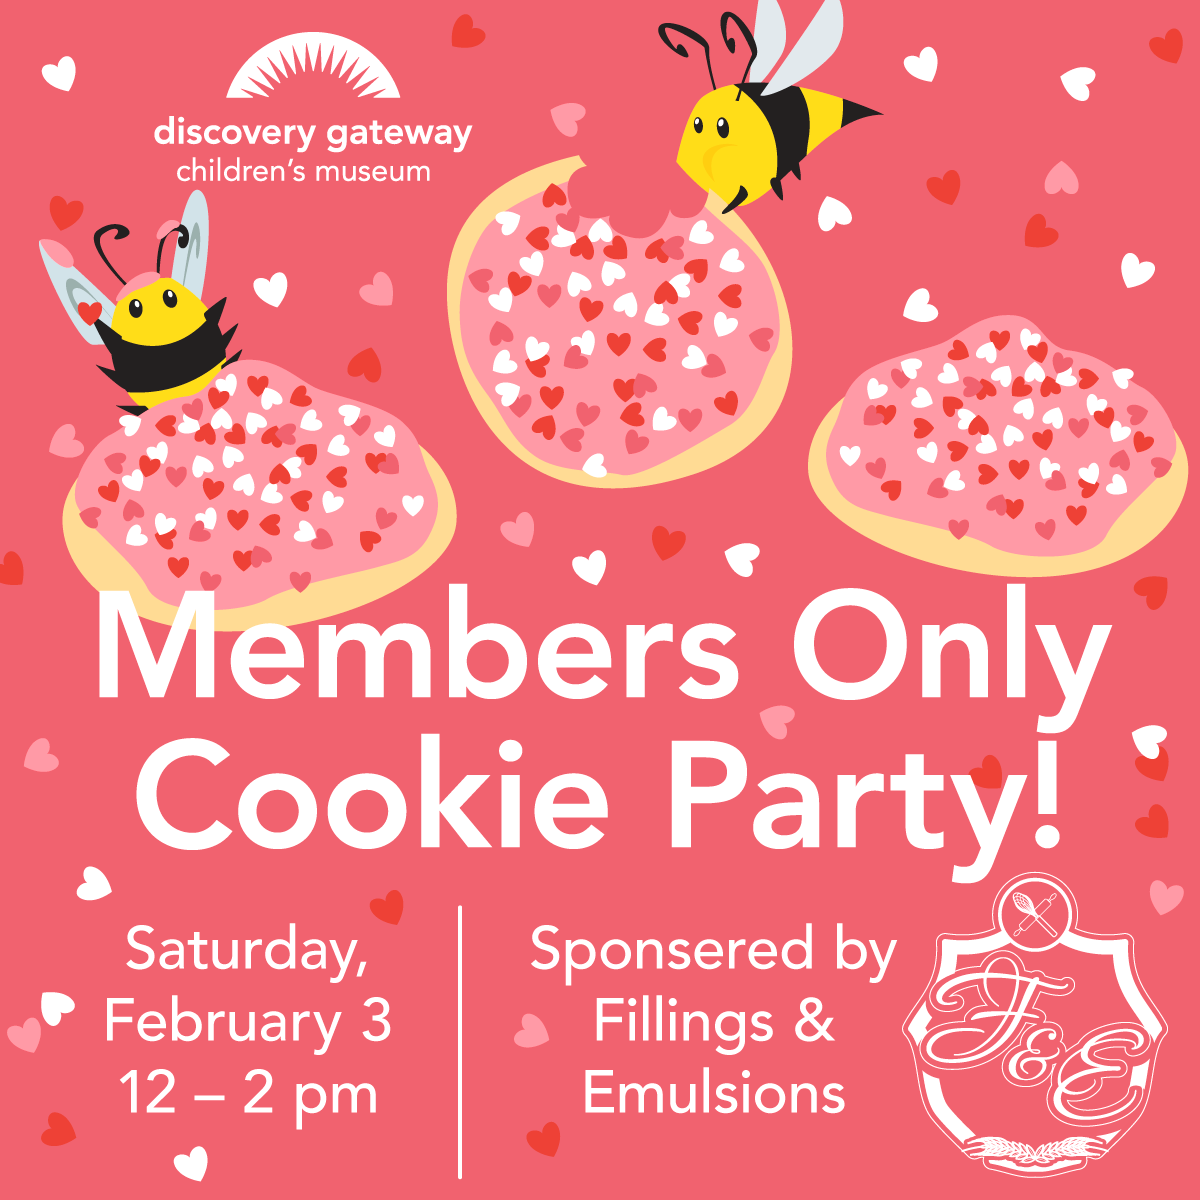 Members only cookie party kids out and about salt lake city kristyandbryce Image collections